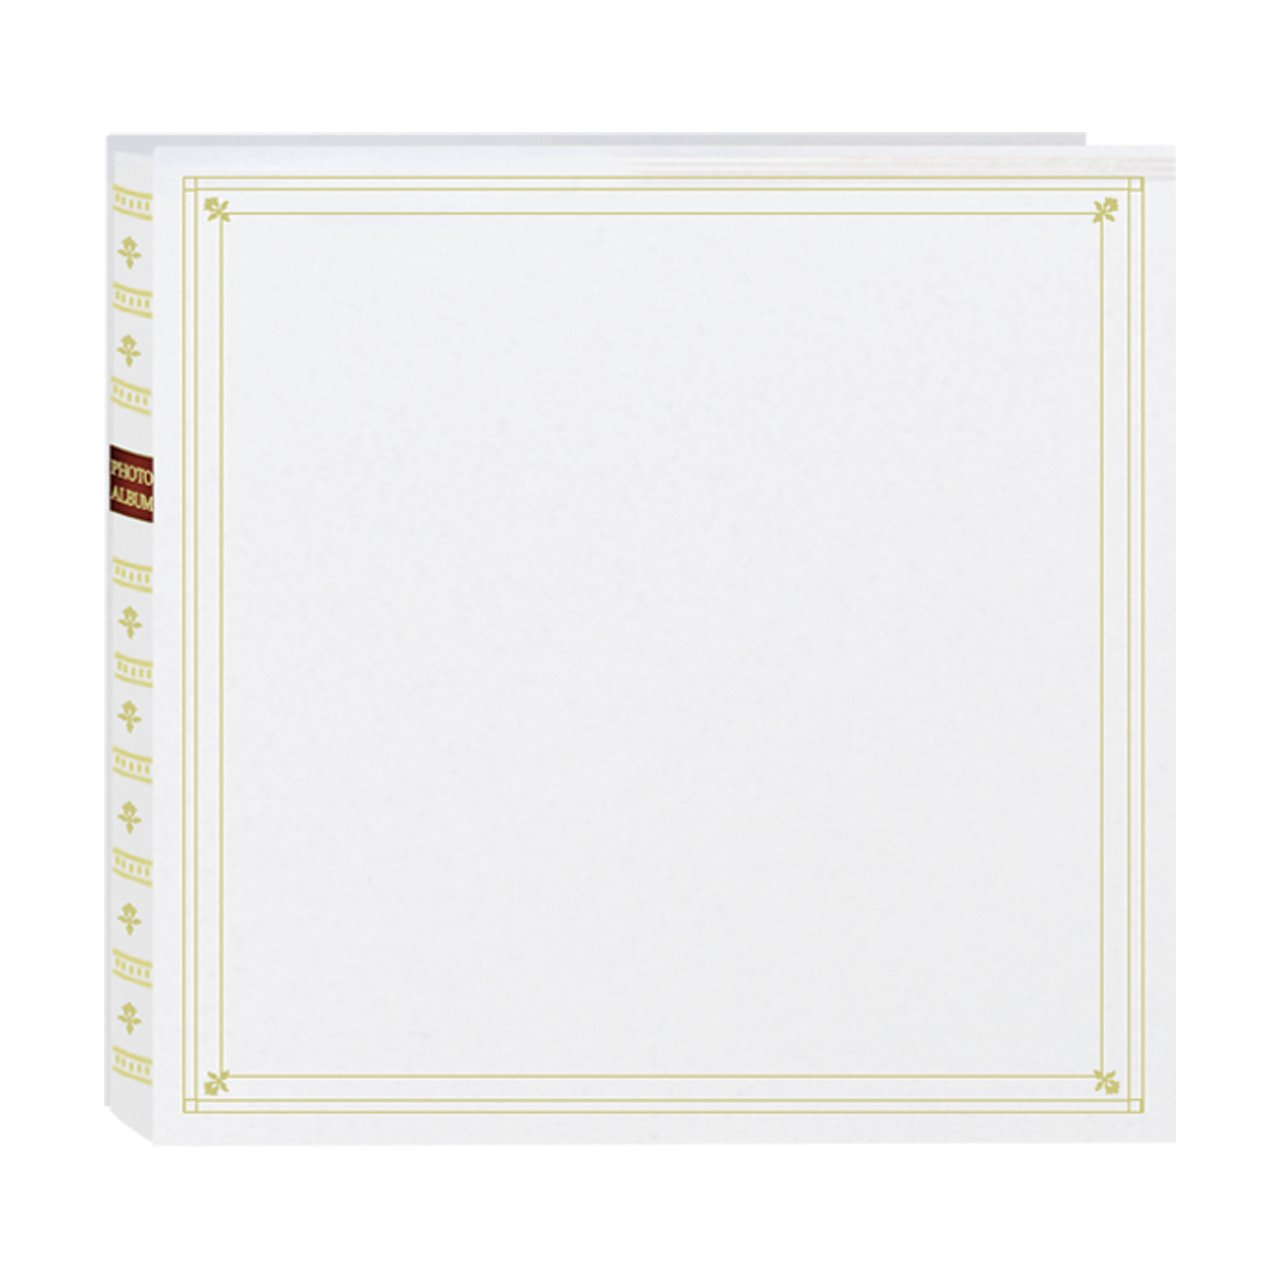 Pioneer Photo Albums 300-Pocket Post Bound Leatherette Cover Photo Album, 3.5 x 5.25 Inch Prints, Royal Blue MP-300/RB